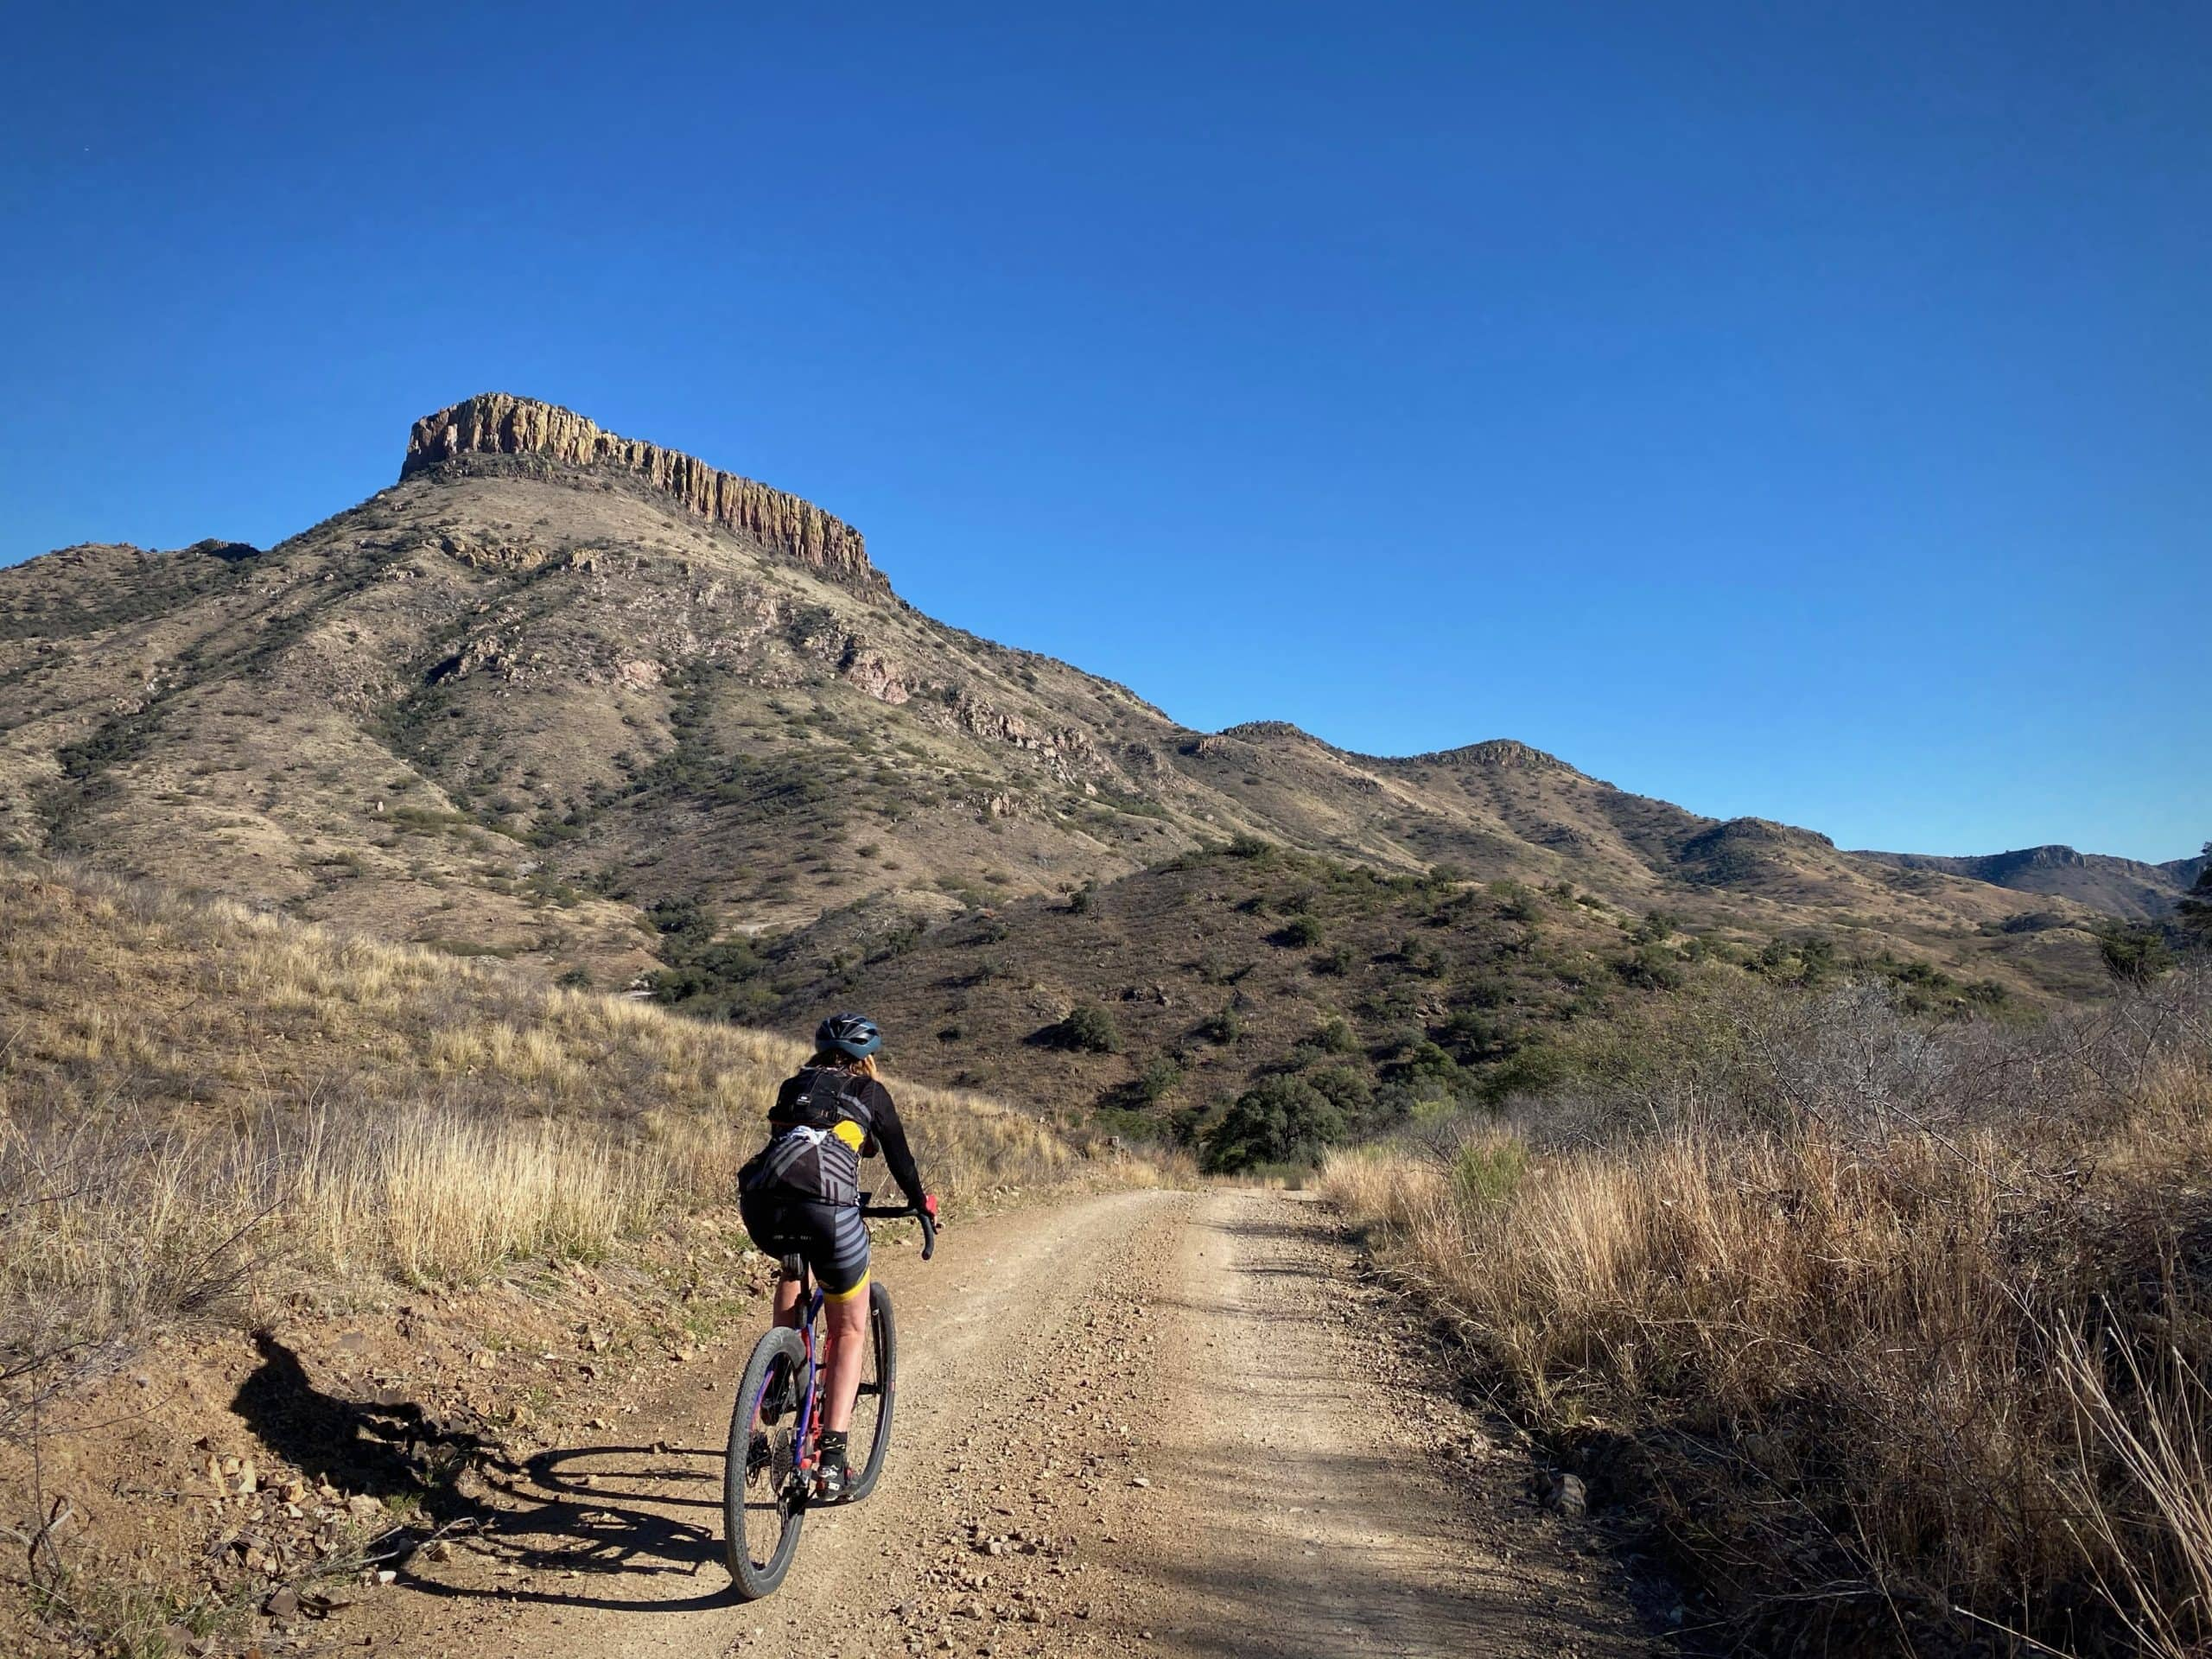 Cyclist on gravel road with Bartolo Mountain in the background.